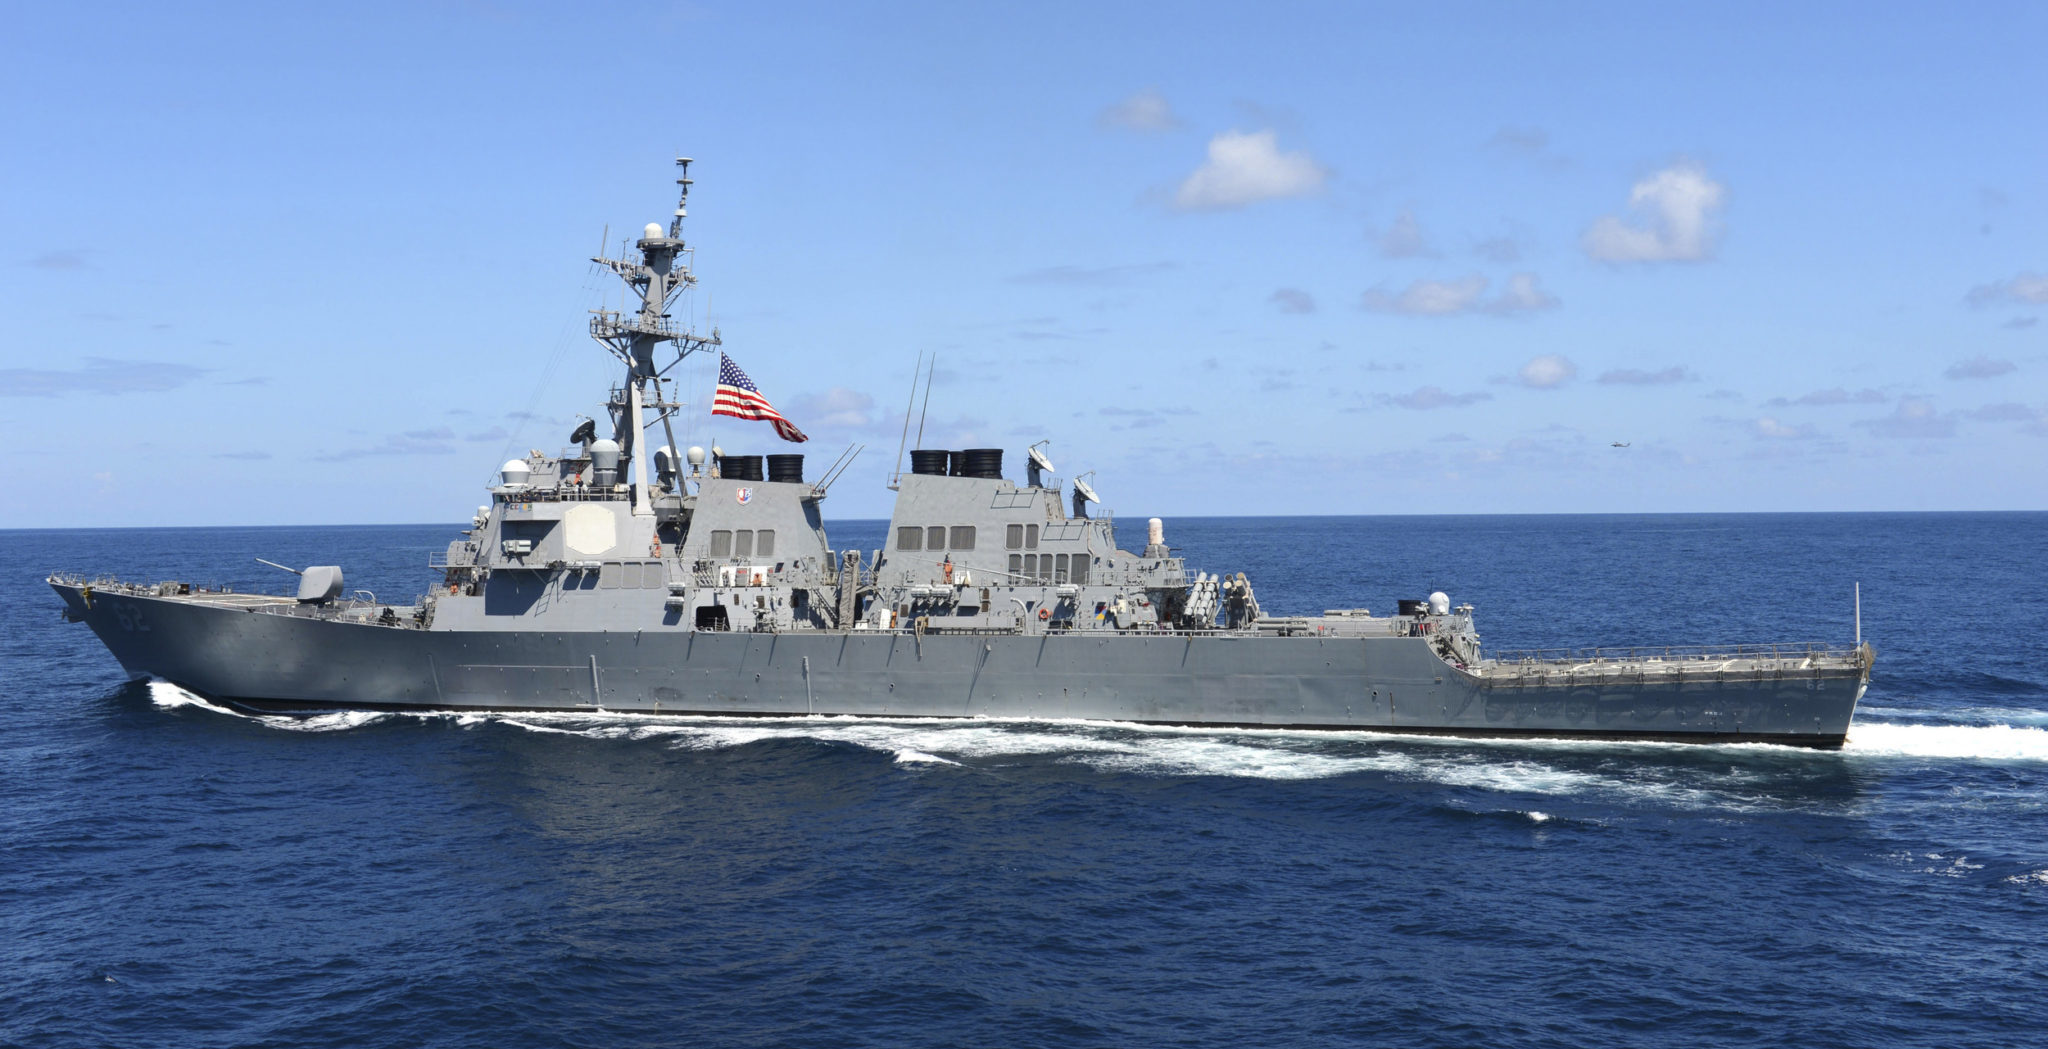 Navy drops criminal cases against USS Fitzgerald officers charged in 2017 fatal collision